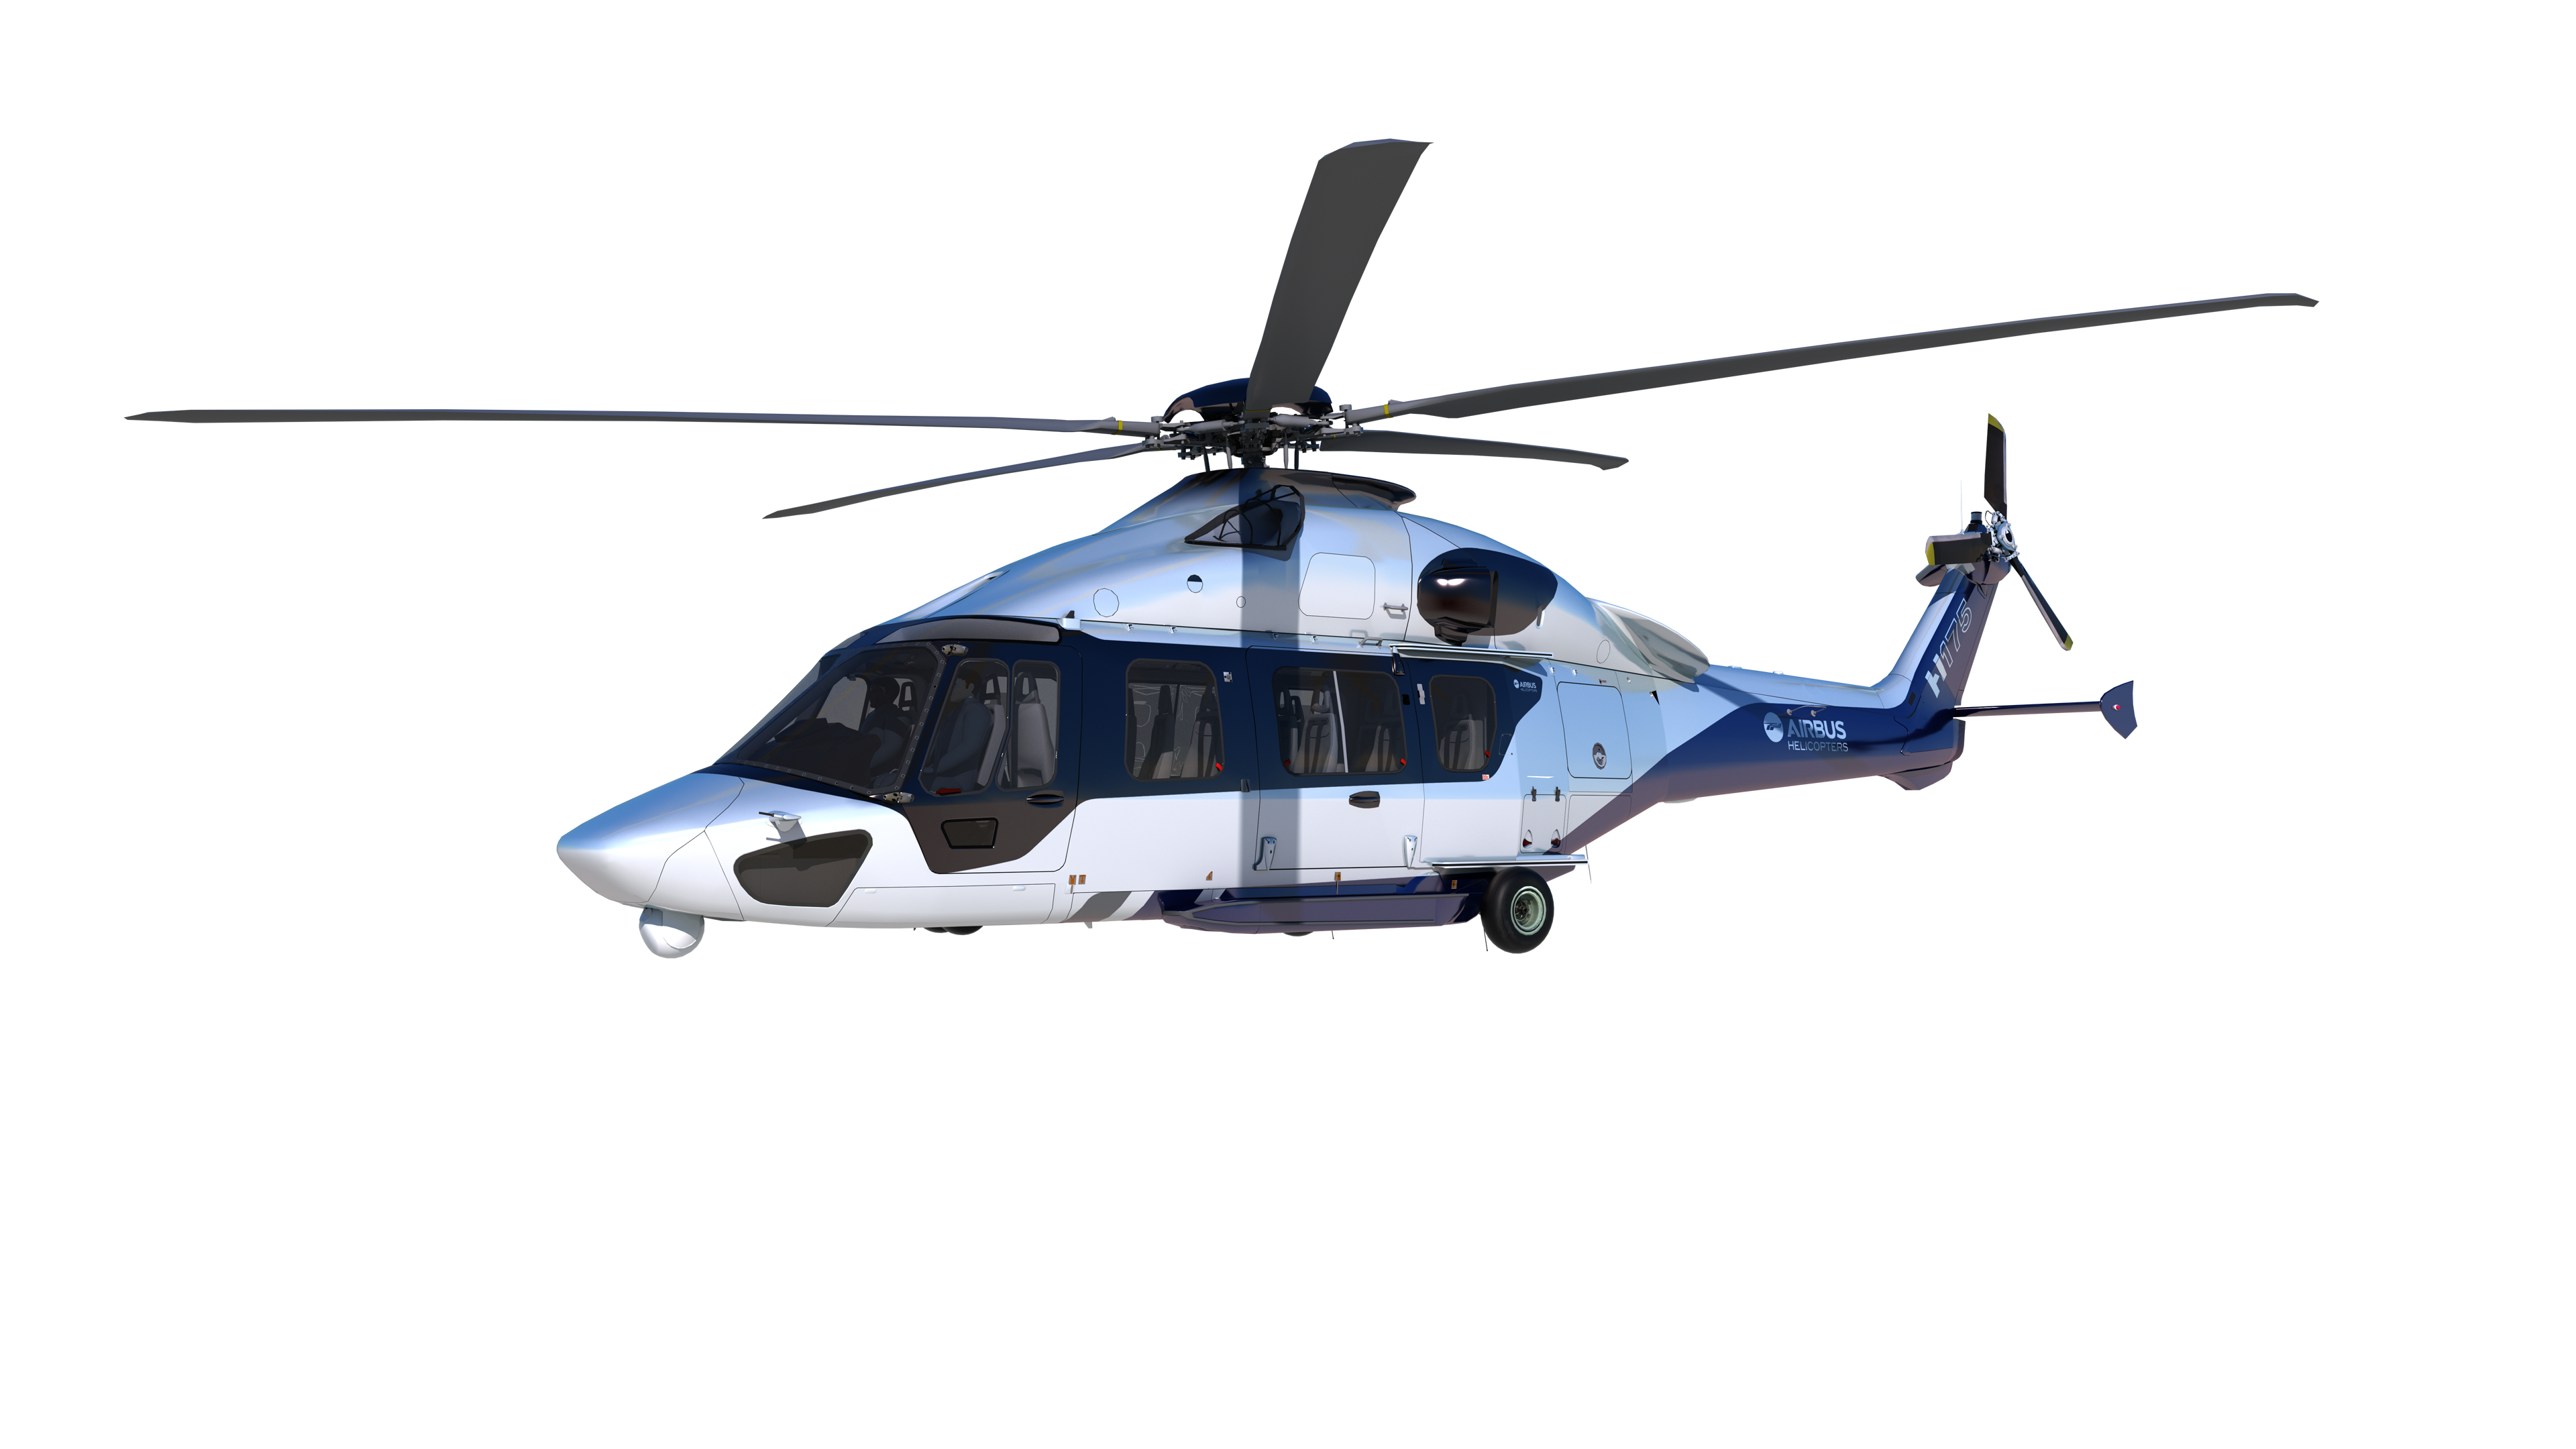 Free Helicopter Vector Png Download image #40875